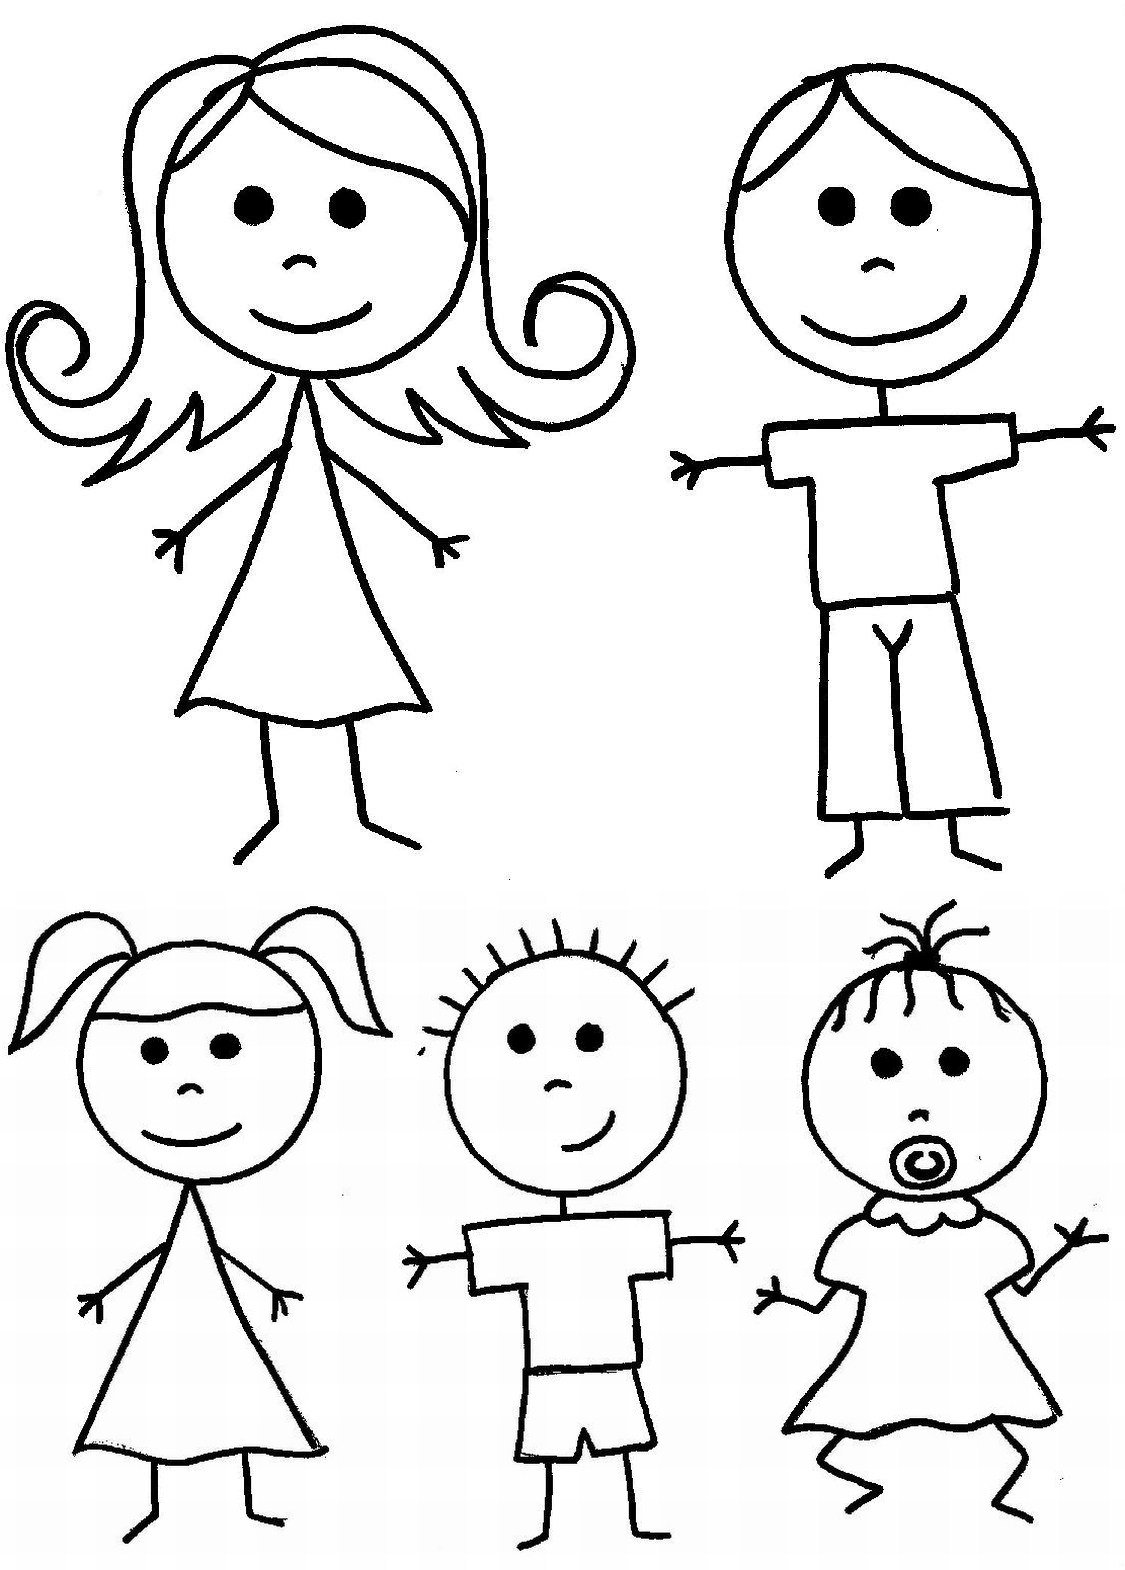 coloring pictures people people coloring pages for adults at getdrawings free people pictures coloring